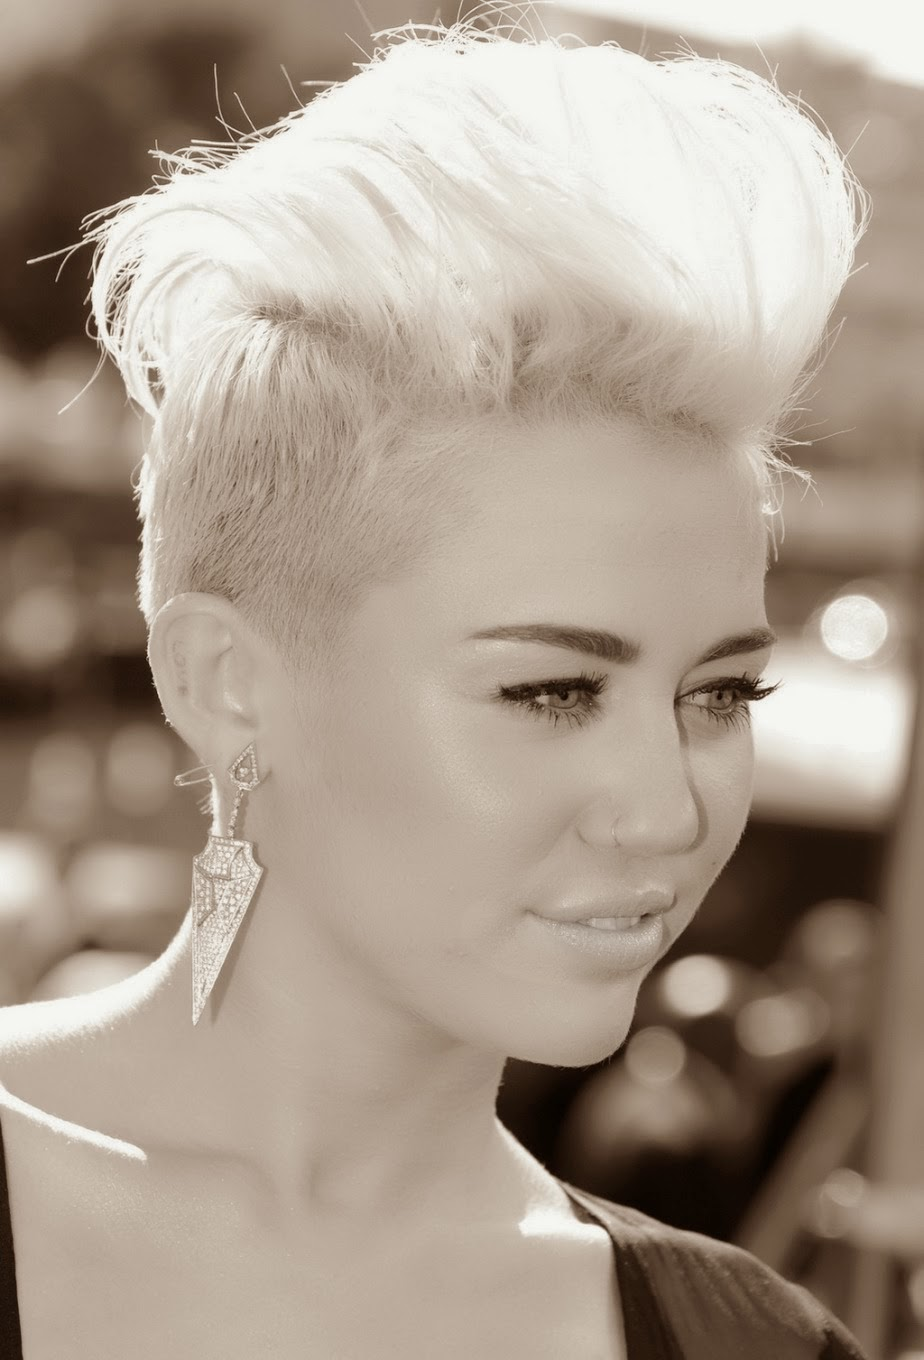 Miley Cyrus Hot HD Wallpapers 2014 Free Download